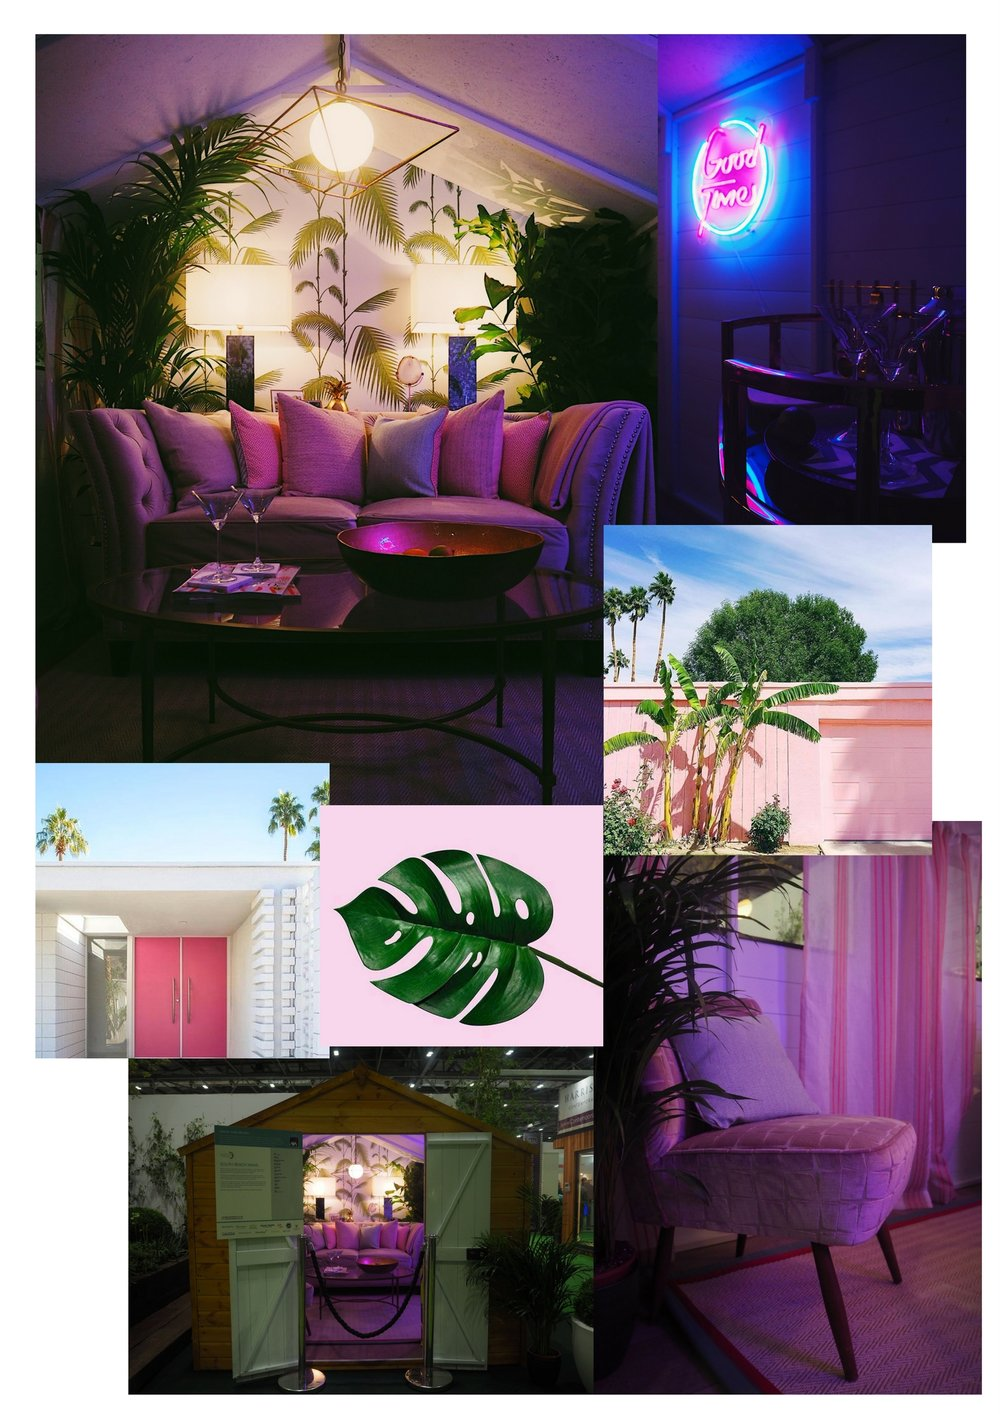 A few shots of the South Beach Miami inspired shed, as part of the Grand Shed Project sponsored by AXA Insurance. I noticed the key elements were lush green plants, palm prints and pink, which was my starting point for deigning my balcony for summer.